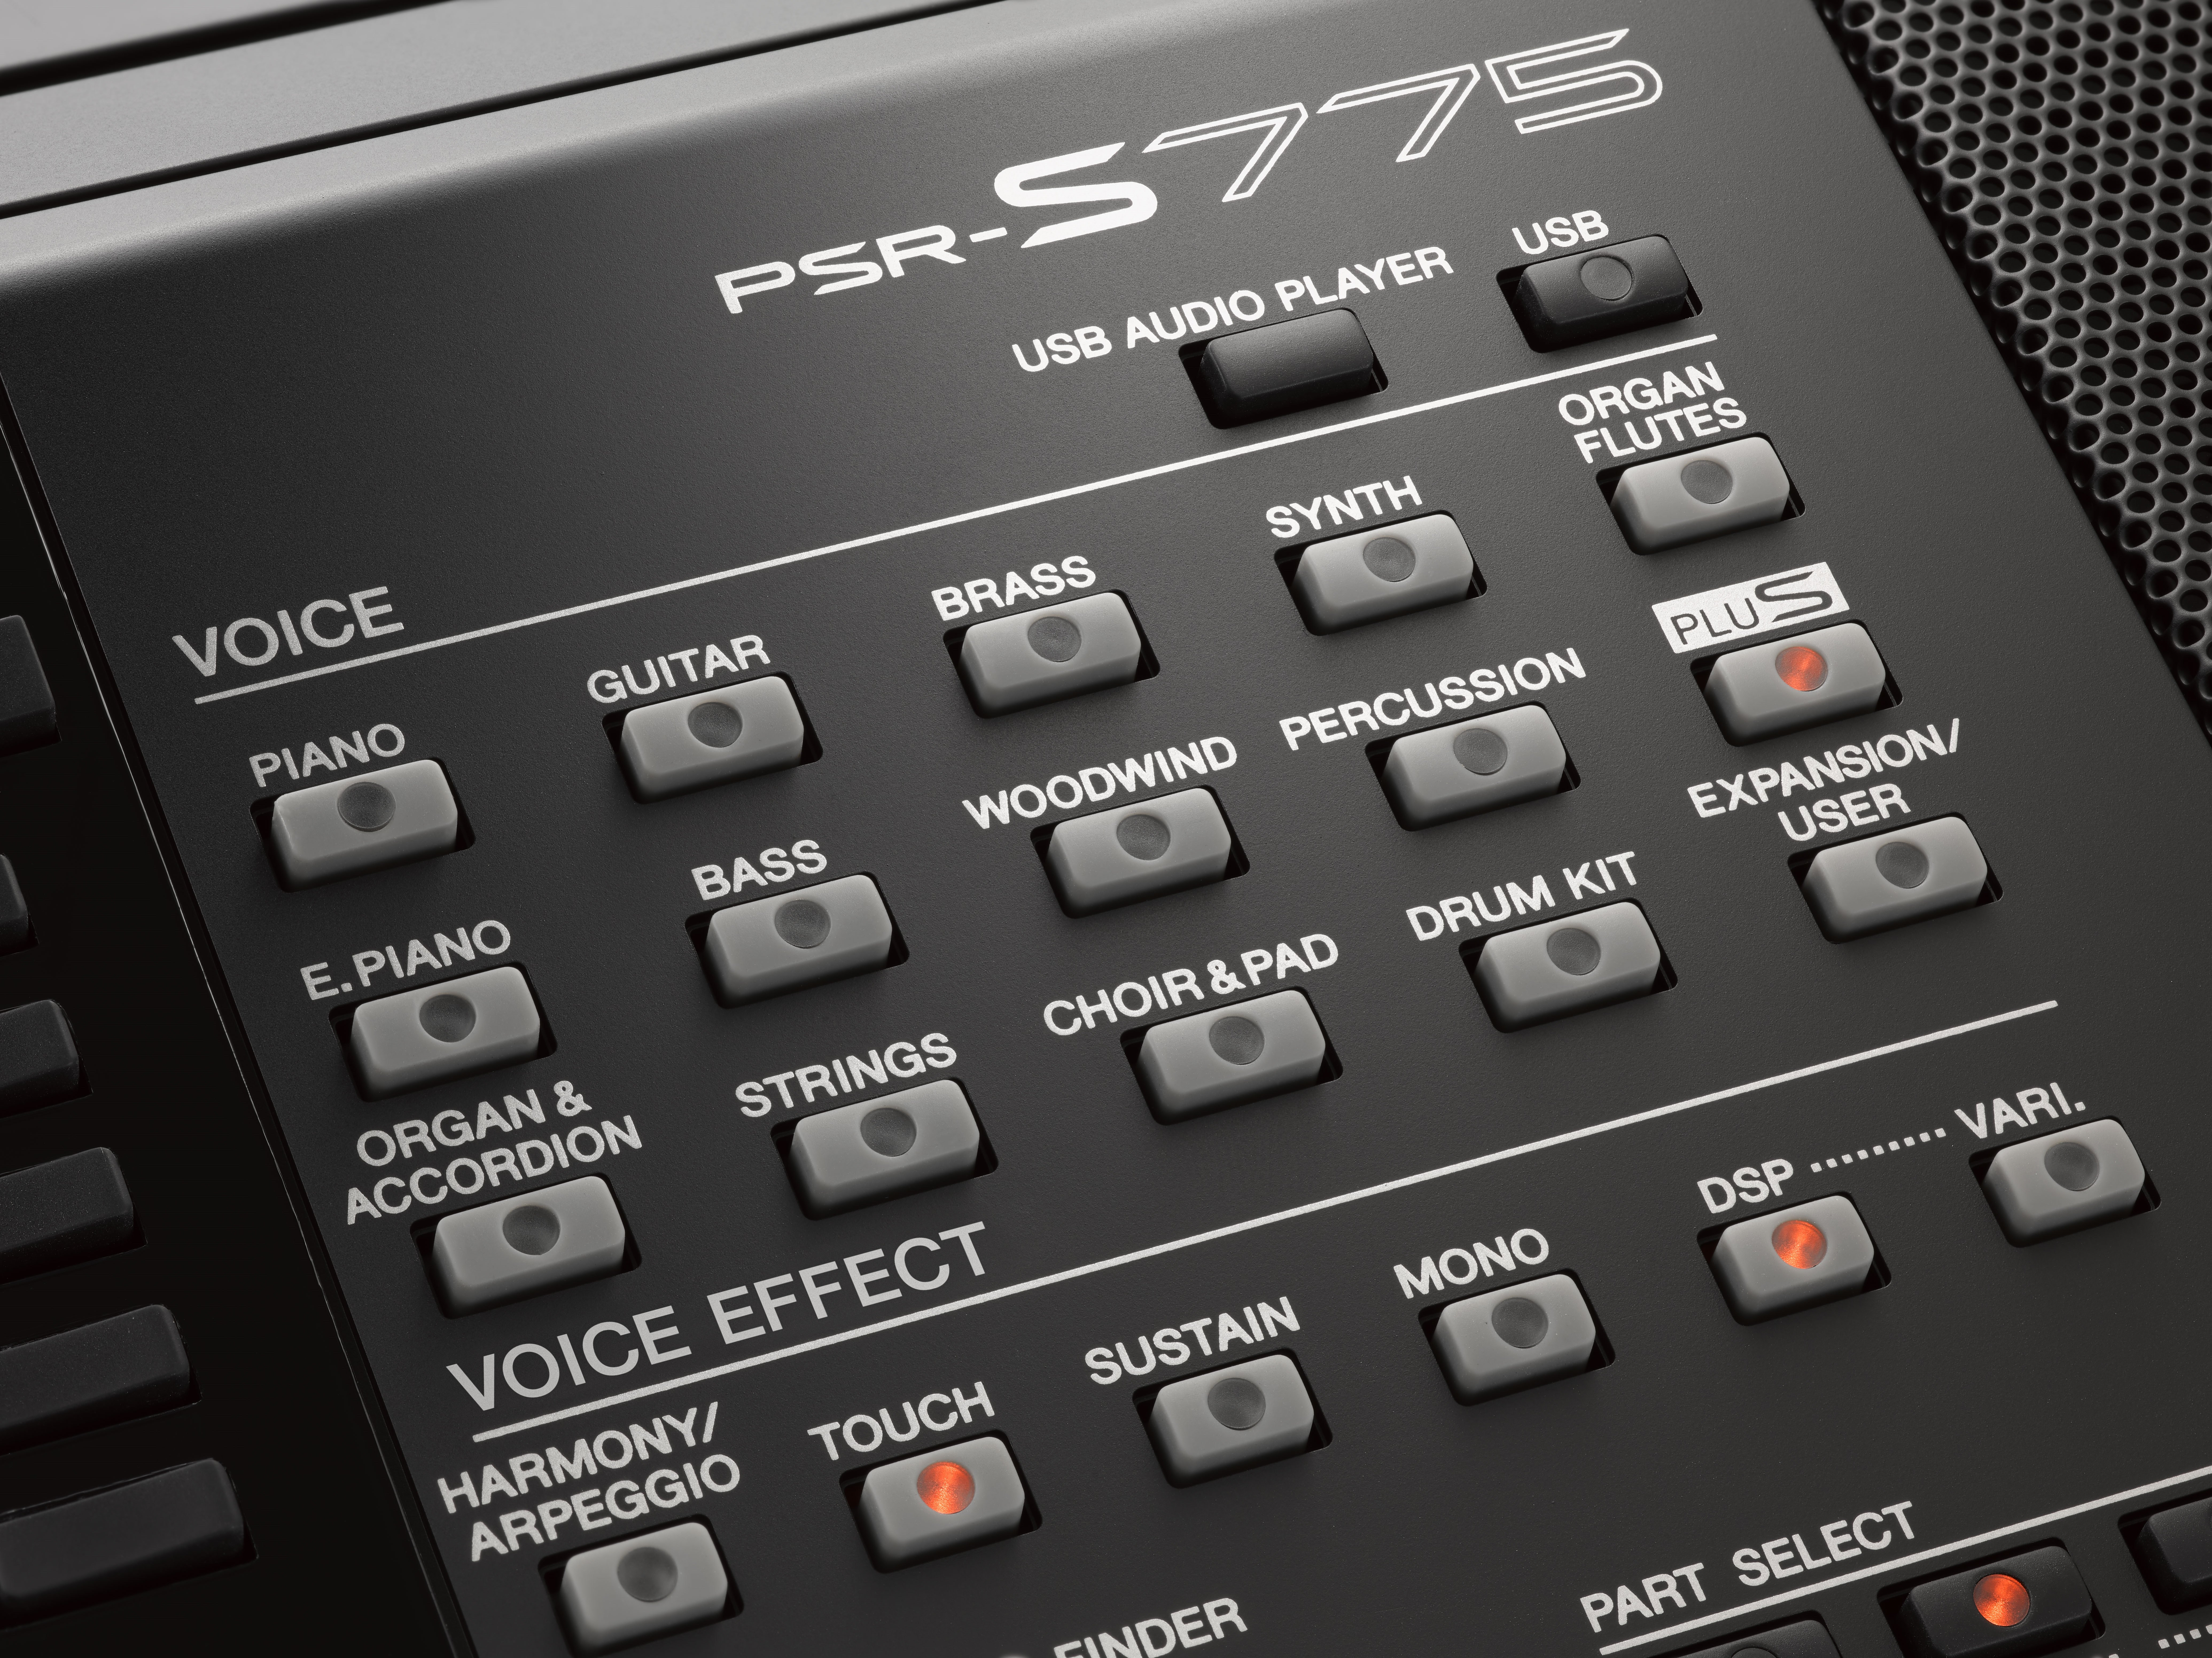 PSR-S775 - Specs - Digital and Arranger Workstations